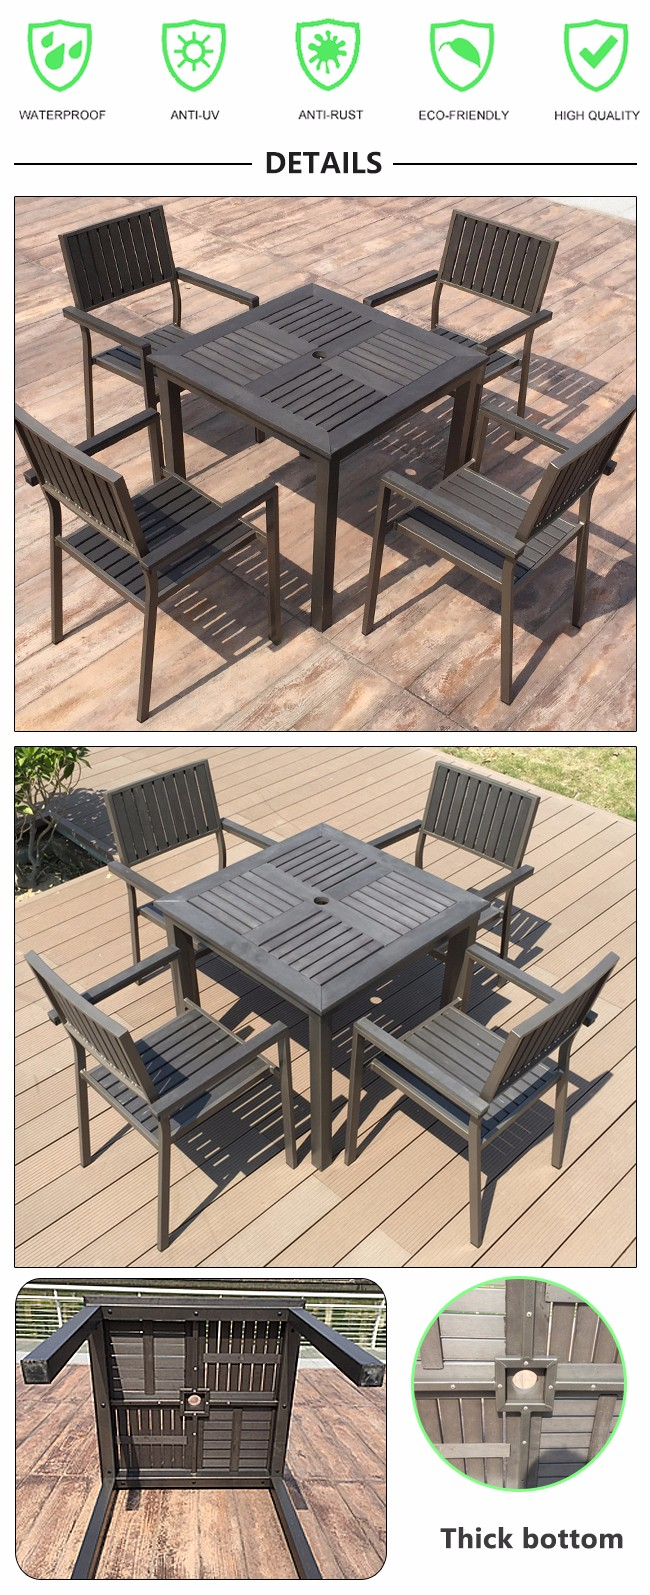 Outdoor homemade coffee shop tables and chairs wood plastic you are here home wpc furniture outdoor homemade coffee shop tables geotapseo Gallery